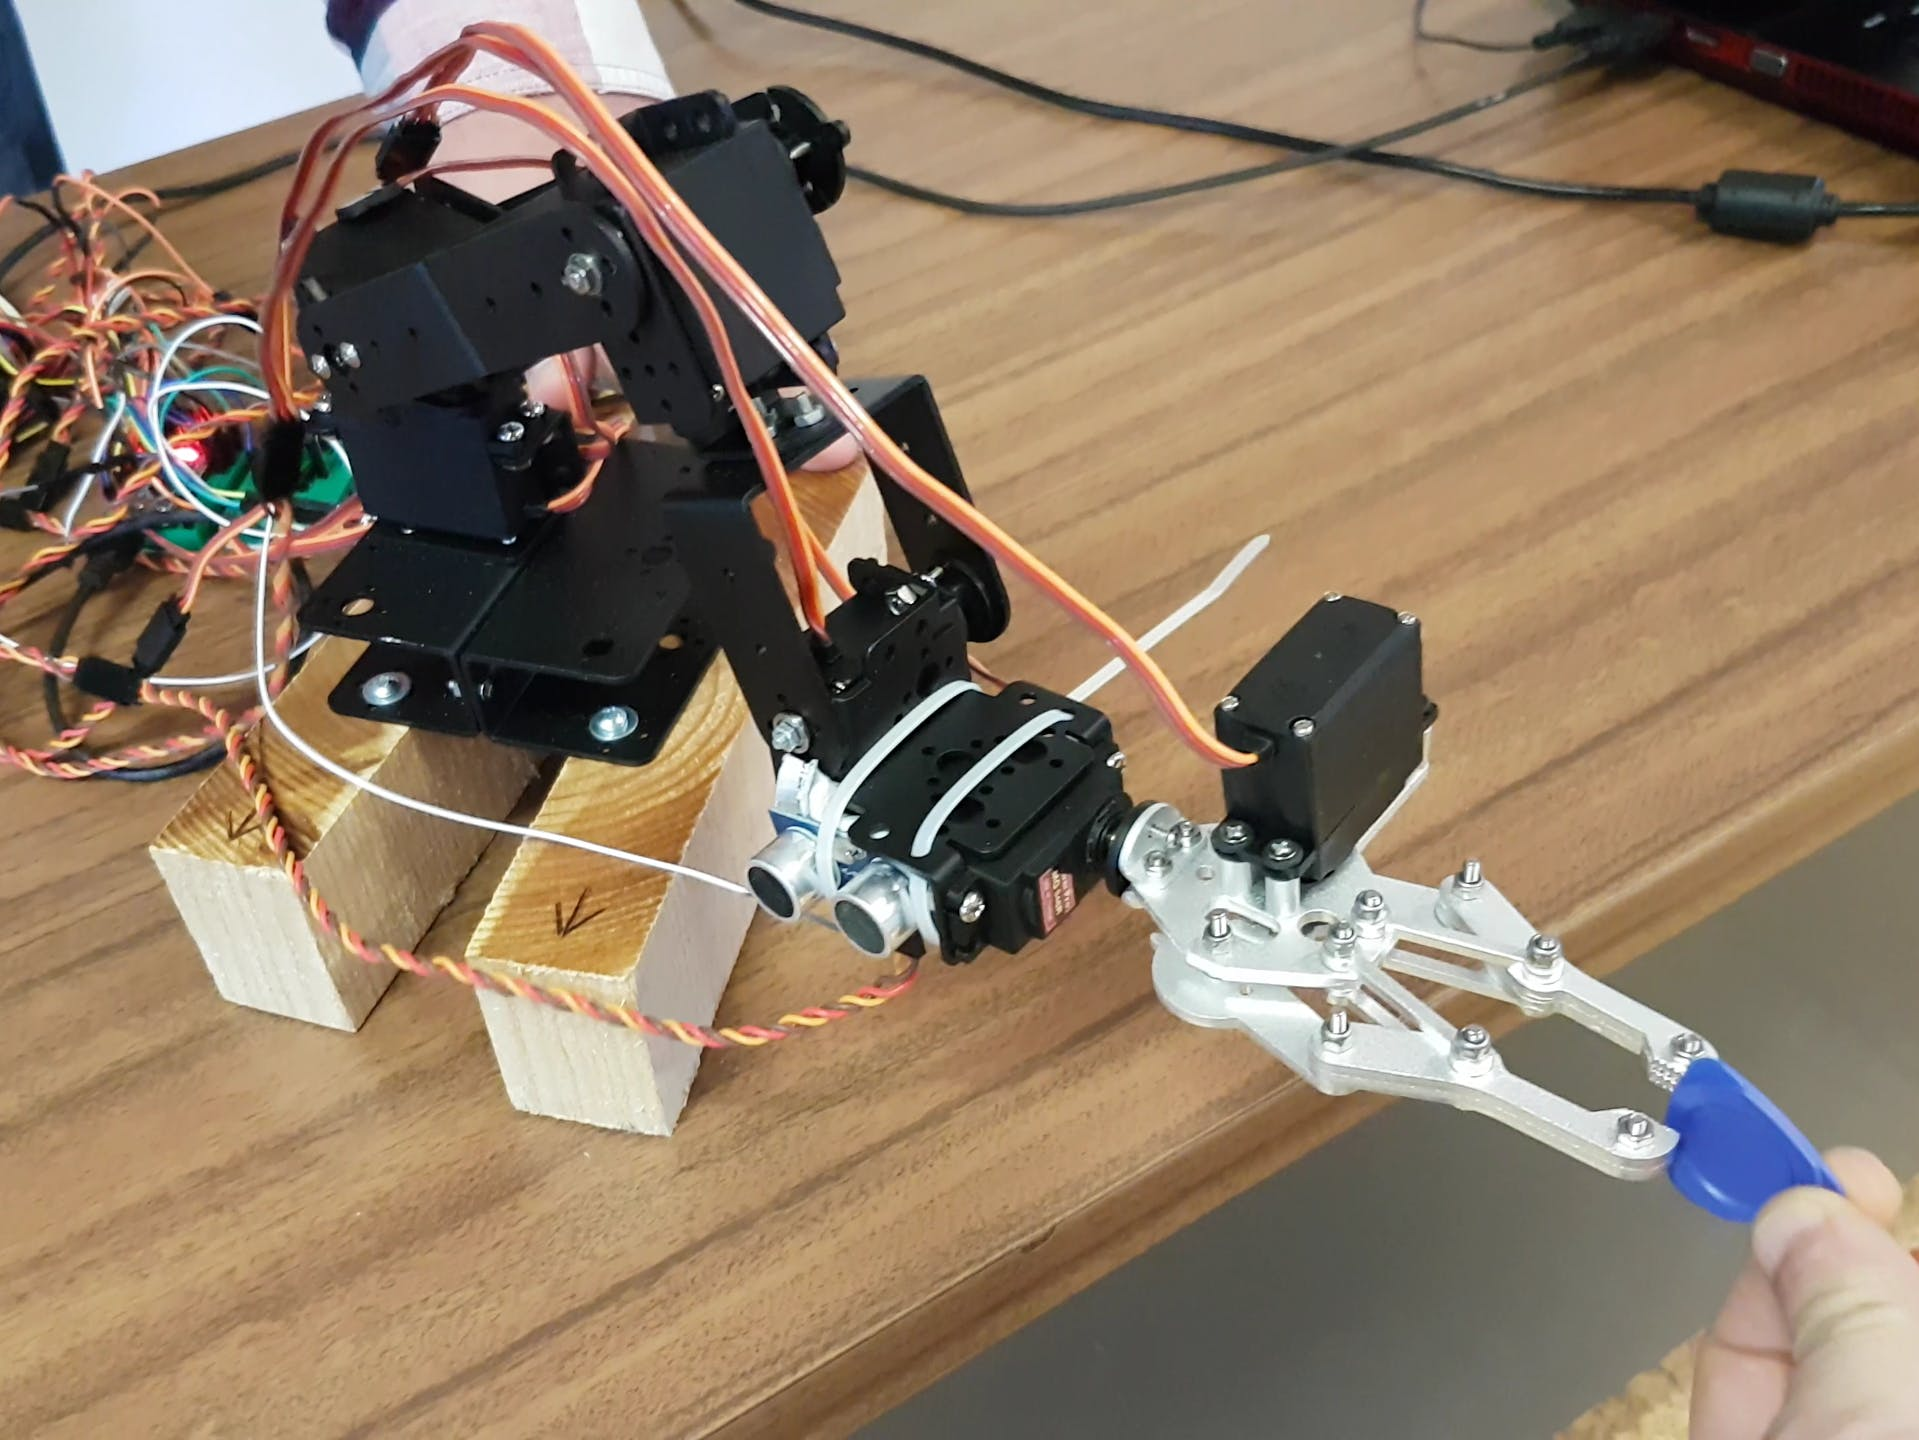 Object Avoiding FSM Robot Arm